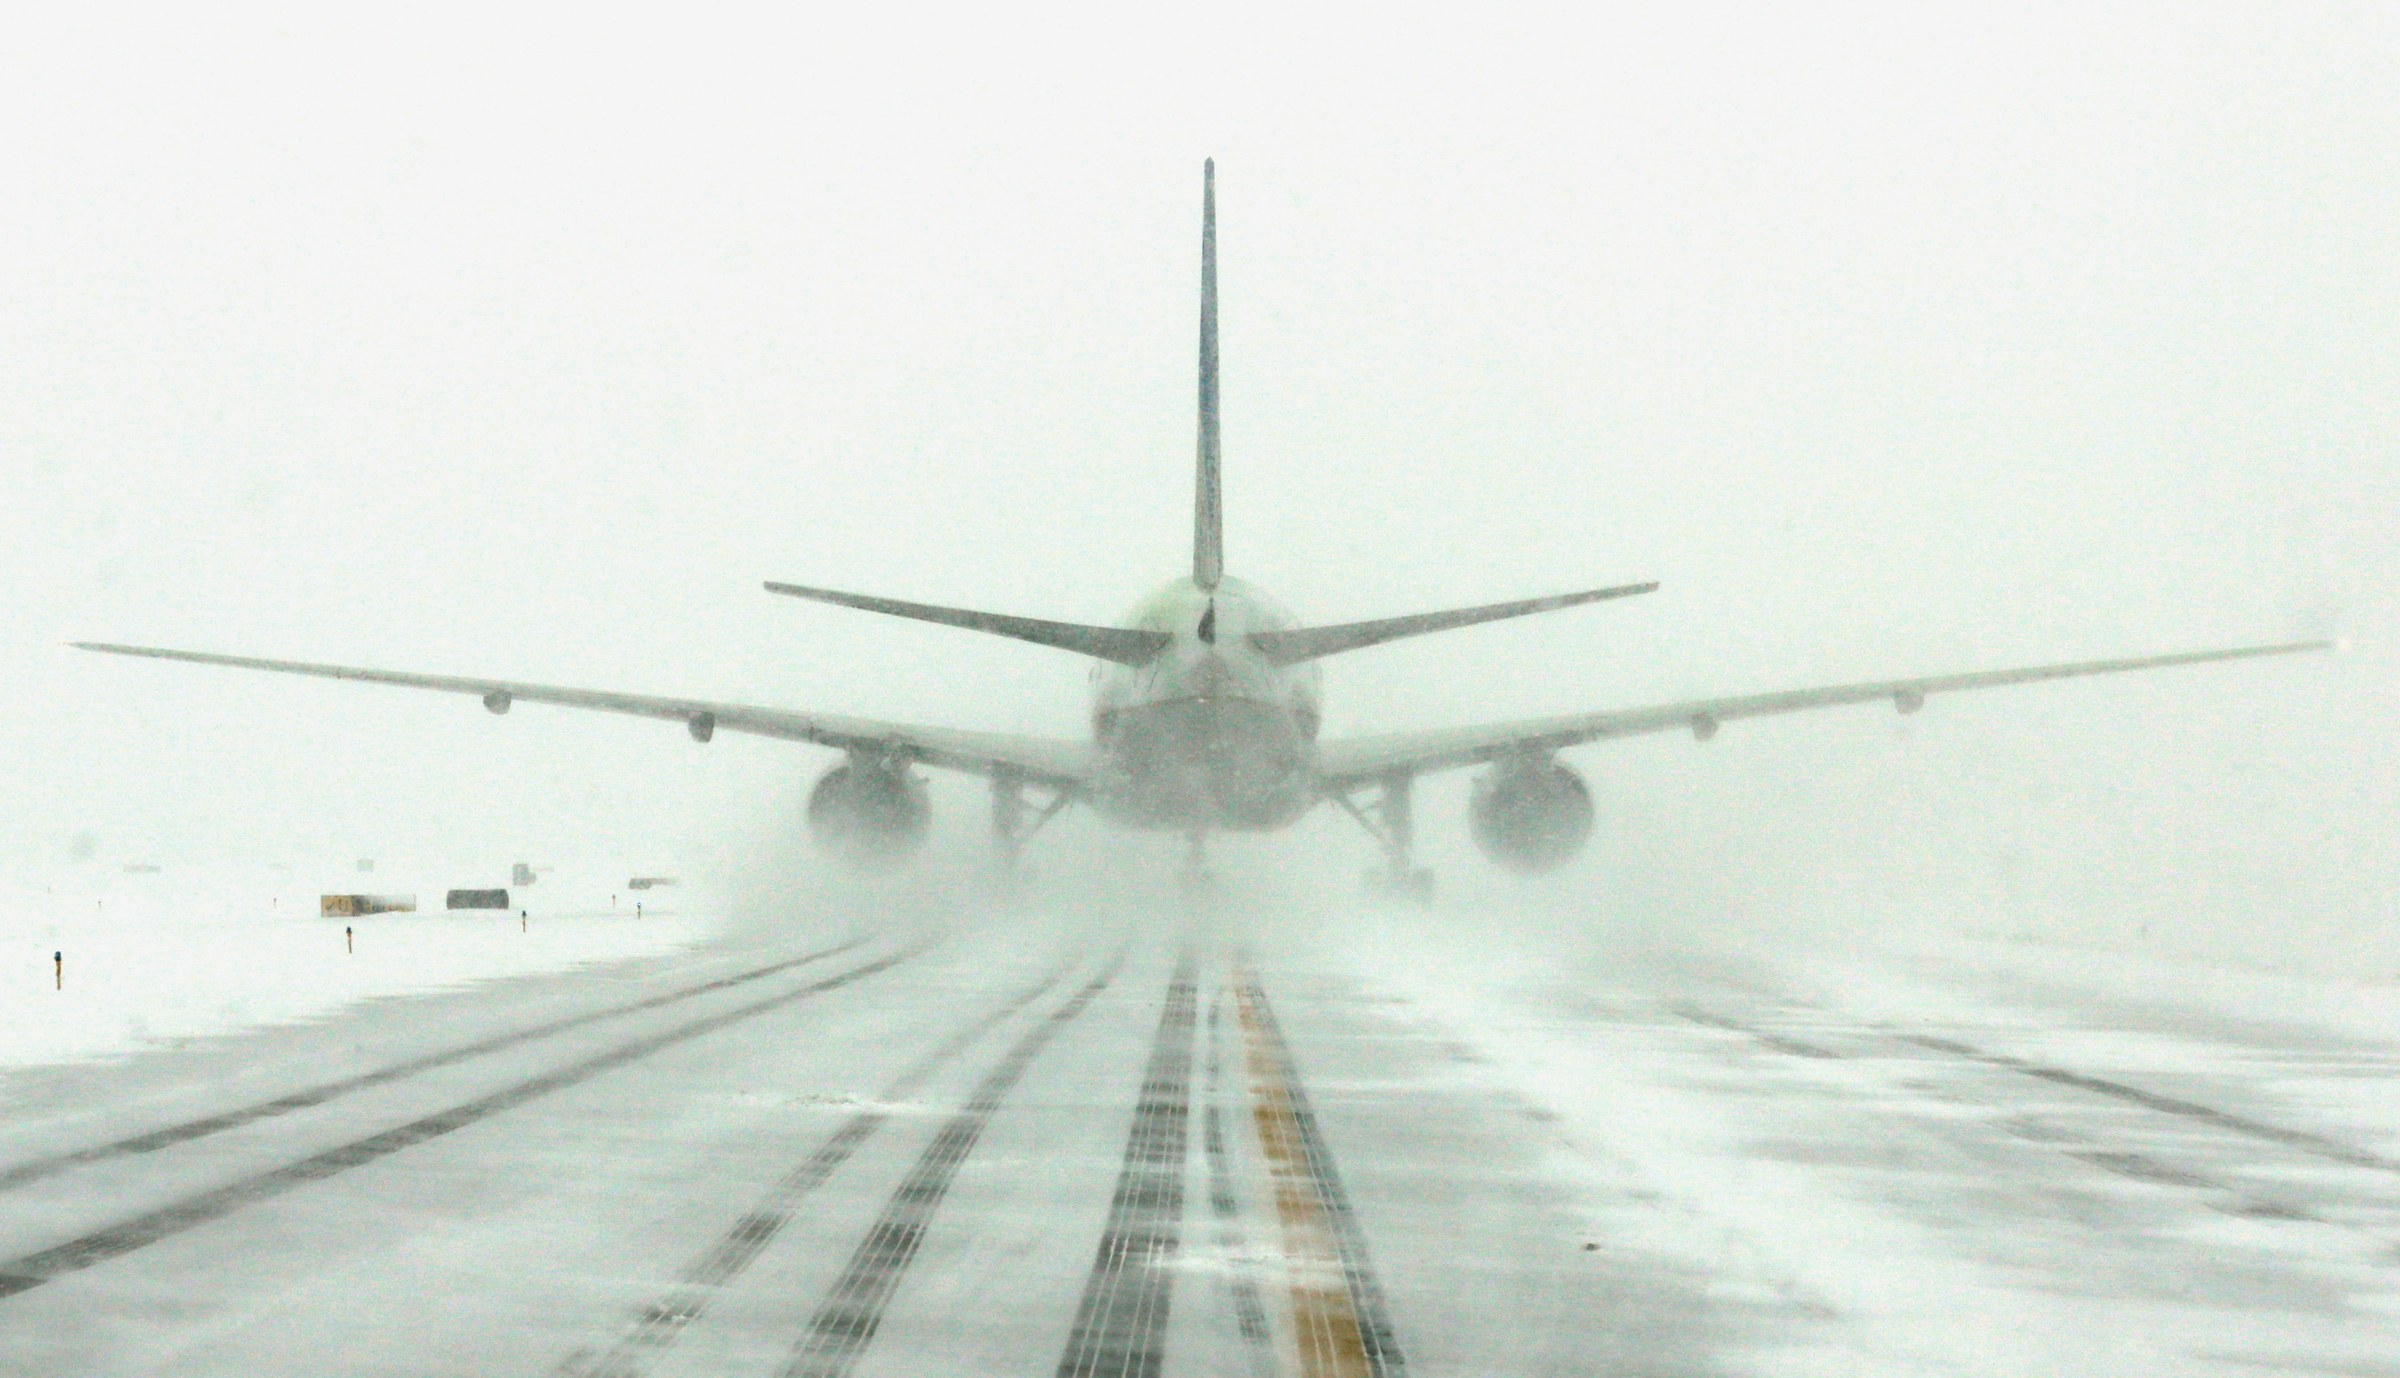 icy-runway-ft.jpg